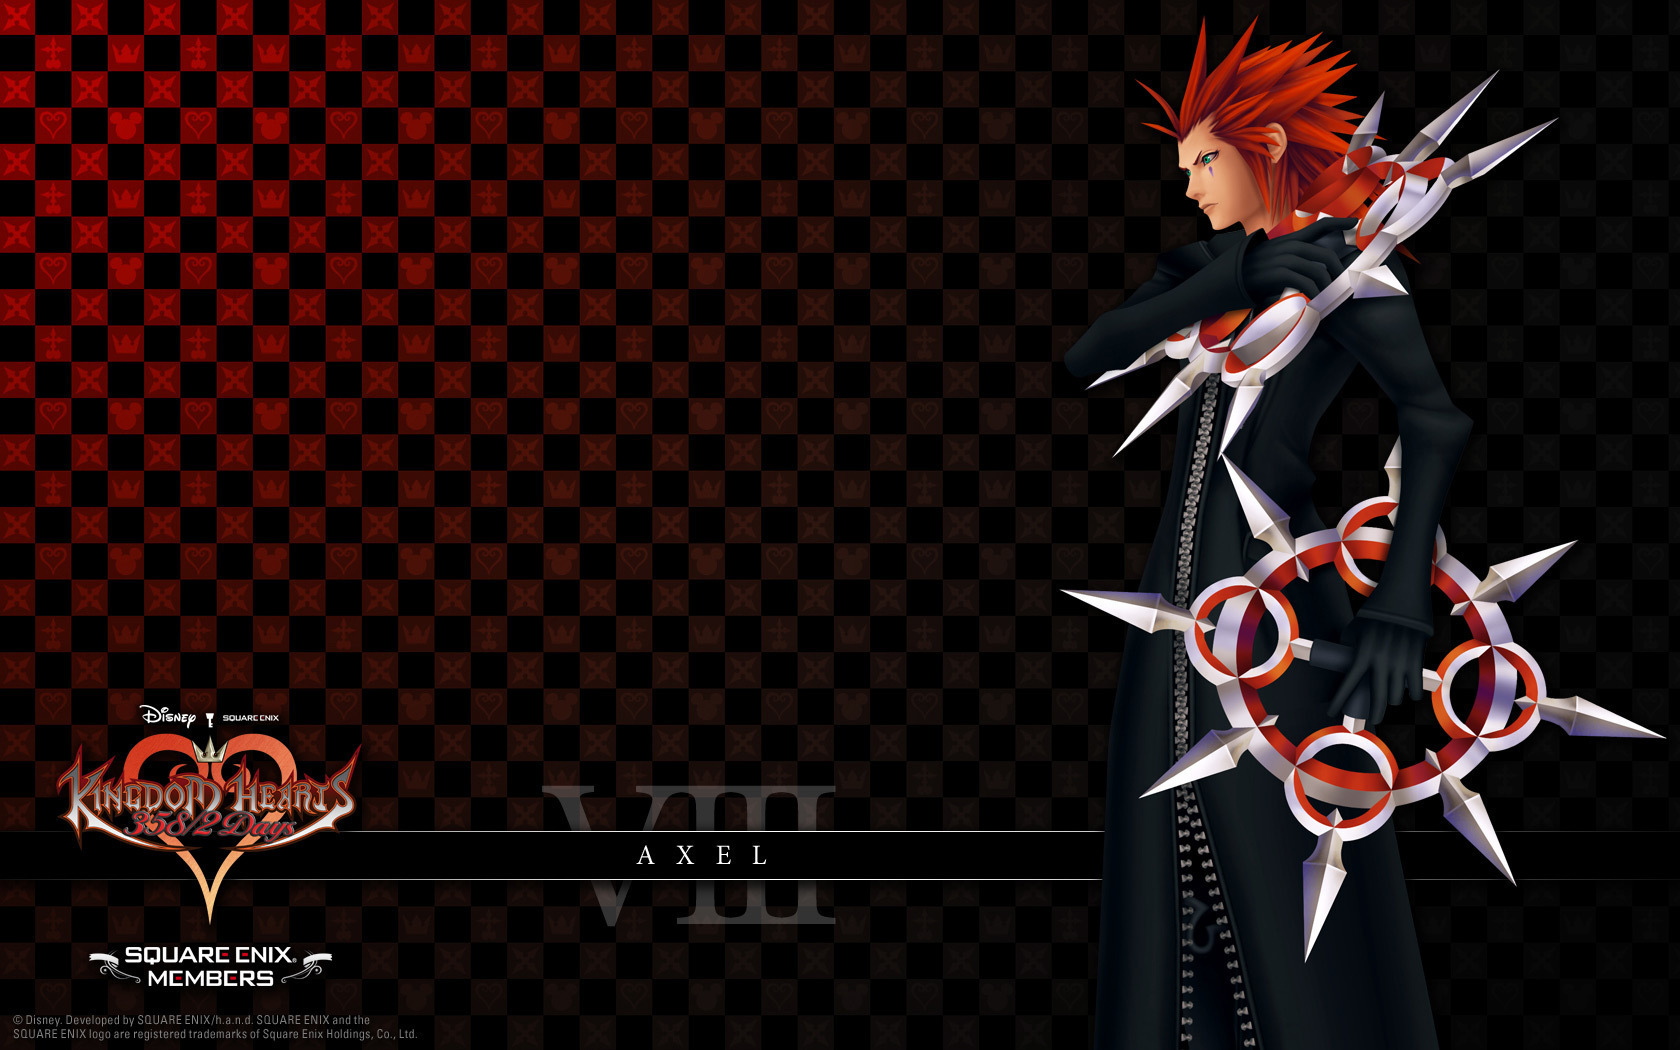 kingdom hearts sonic the hedgehog images wallpaper hd wallpaper and